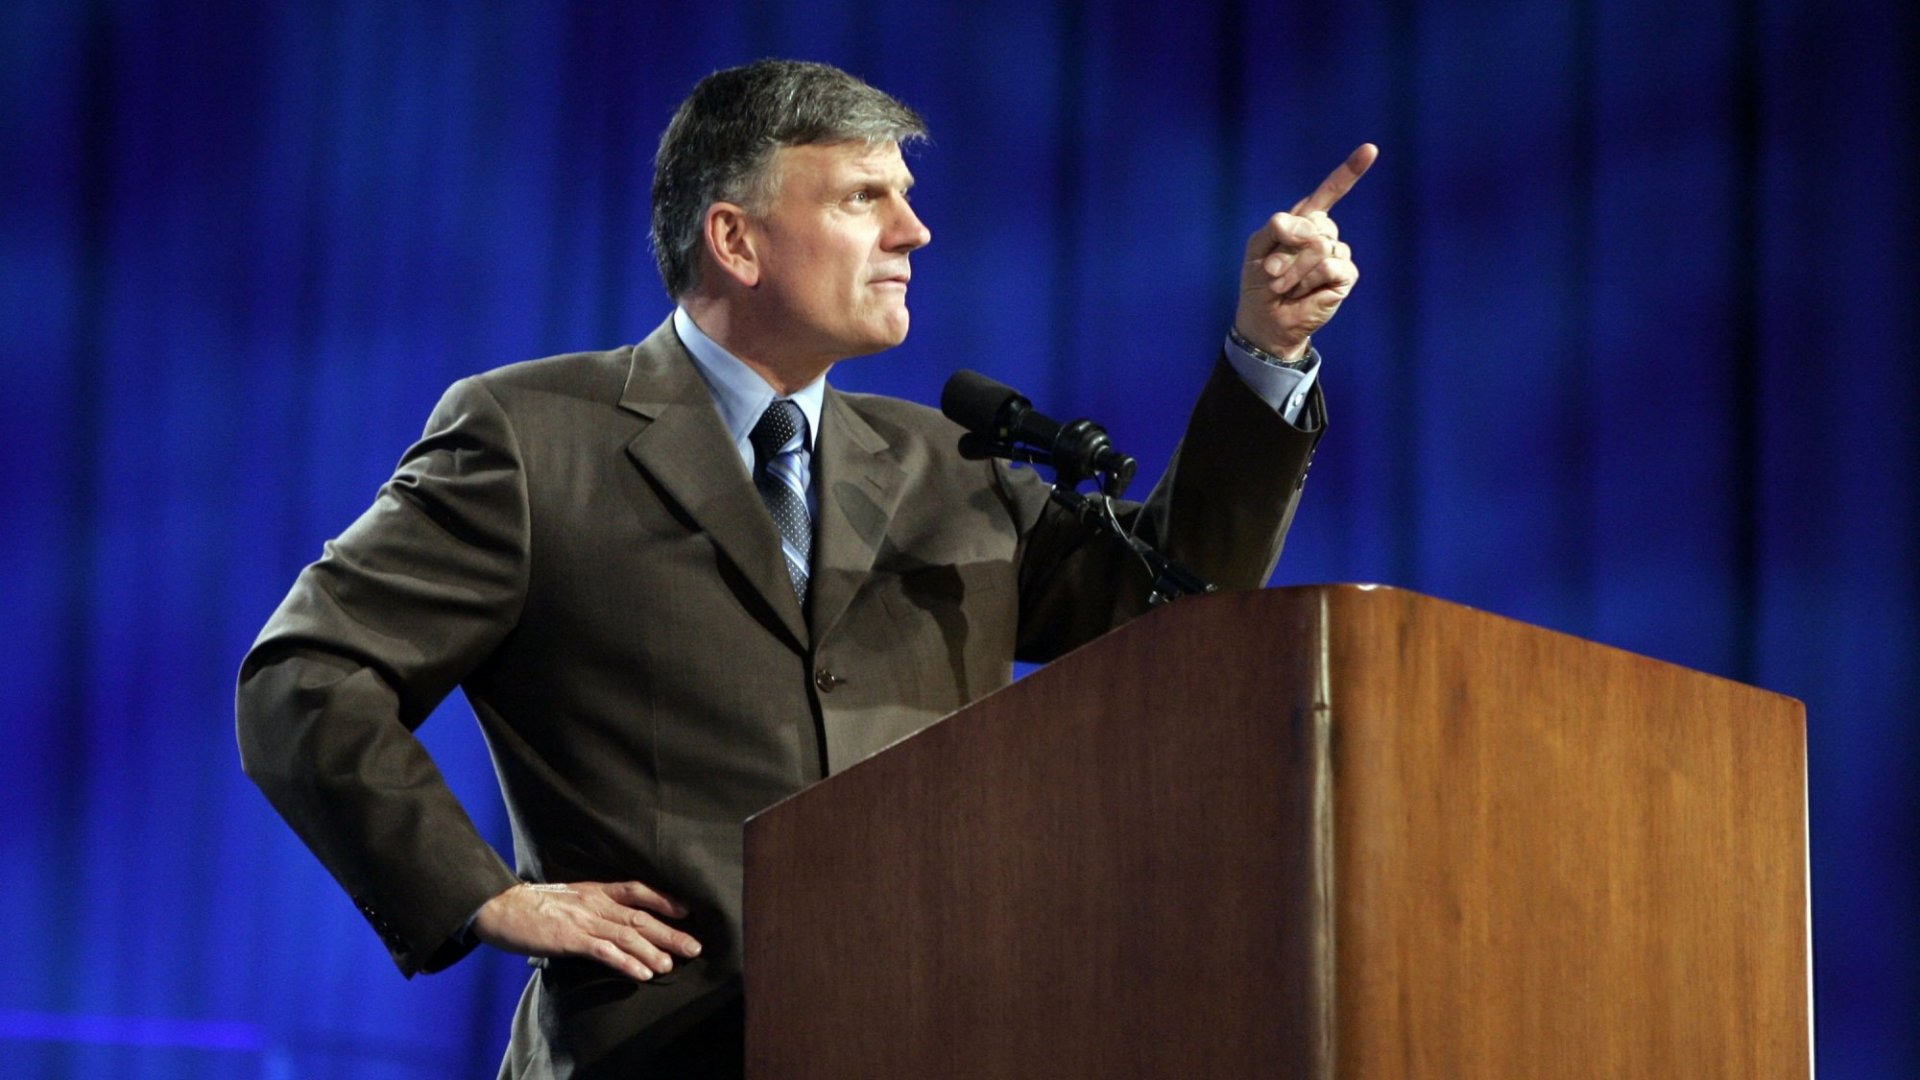 Franklin Graham, president and chief executive of Billy Graham Evangelistic Association, will move the ministry's millions from Wells Fargo in protest of a same-sex advertisement.